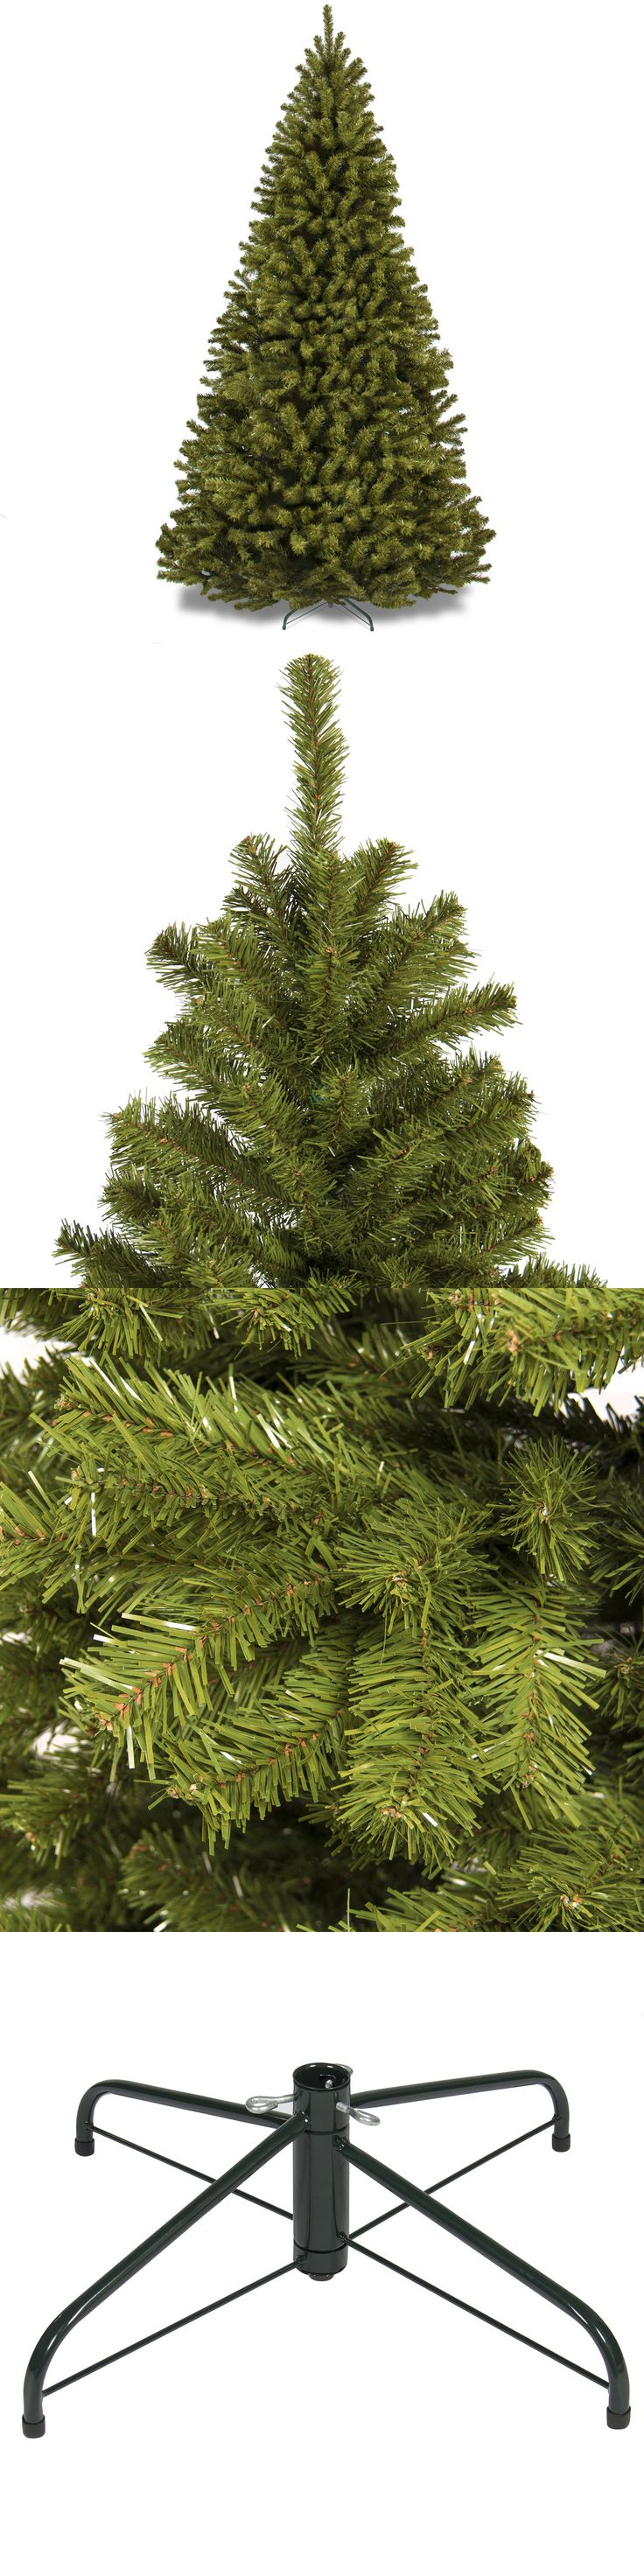 Christmas Decorations: 7.5 Ft. Premium Spruce Hinged Artificial Christmas Tree Holiday Decor With Stand -> BUY IT NOW ONLY: $99.99 on eBay!